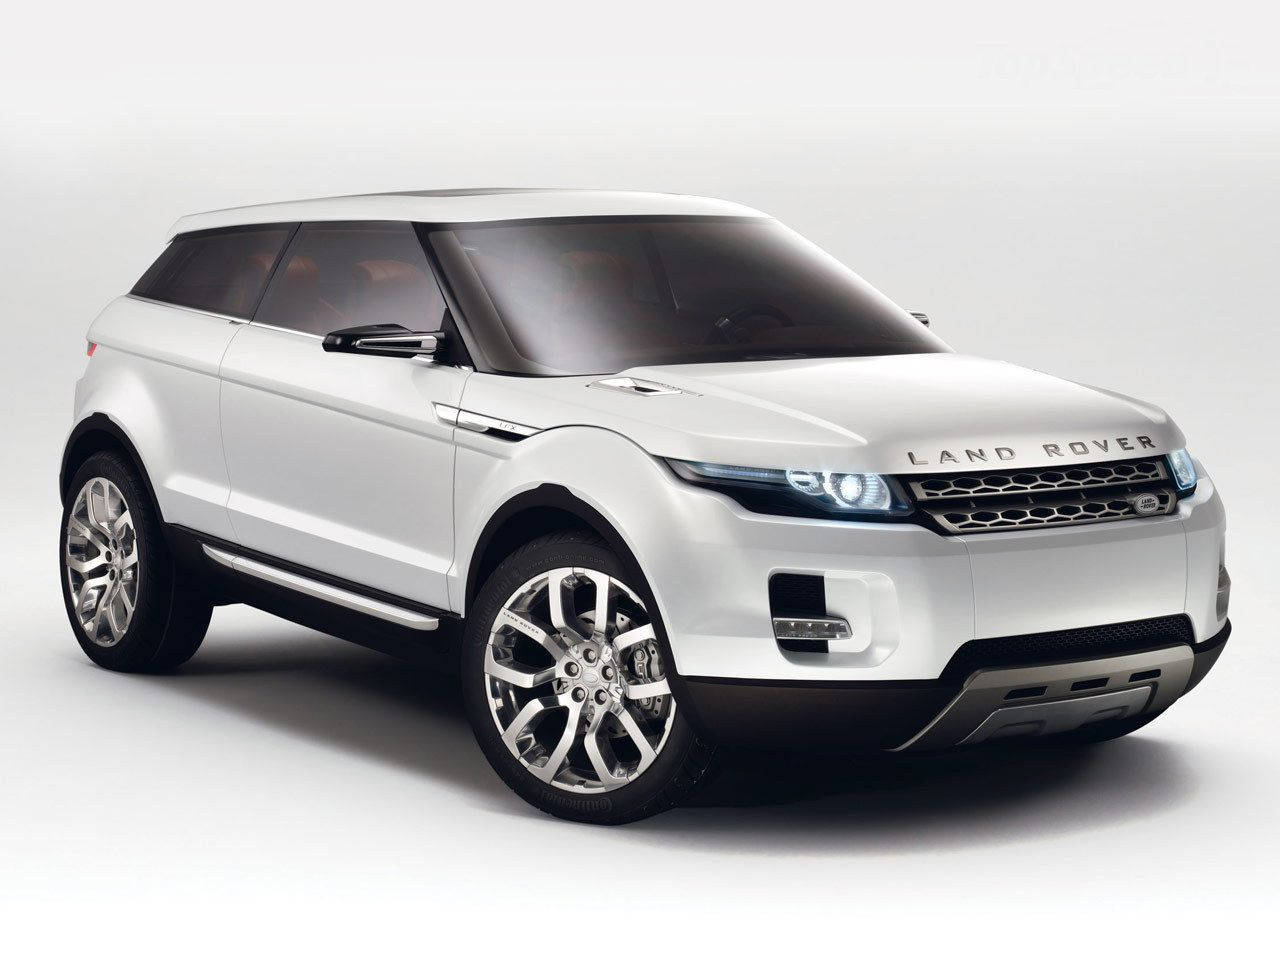 2011 land rover dc100 concept side 2 1280x960 wallpaper - Land Rover Lrx Concept 4 Wallpaper In Resolution